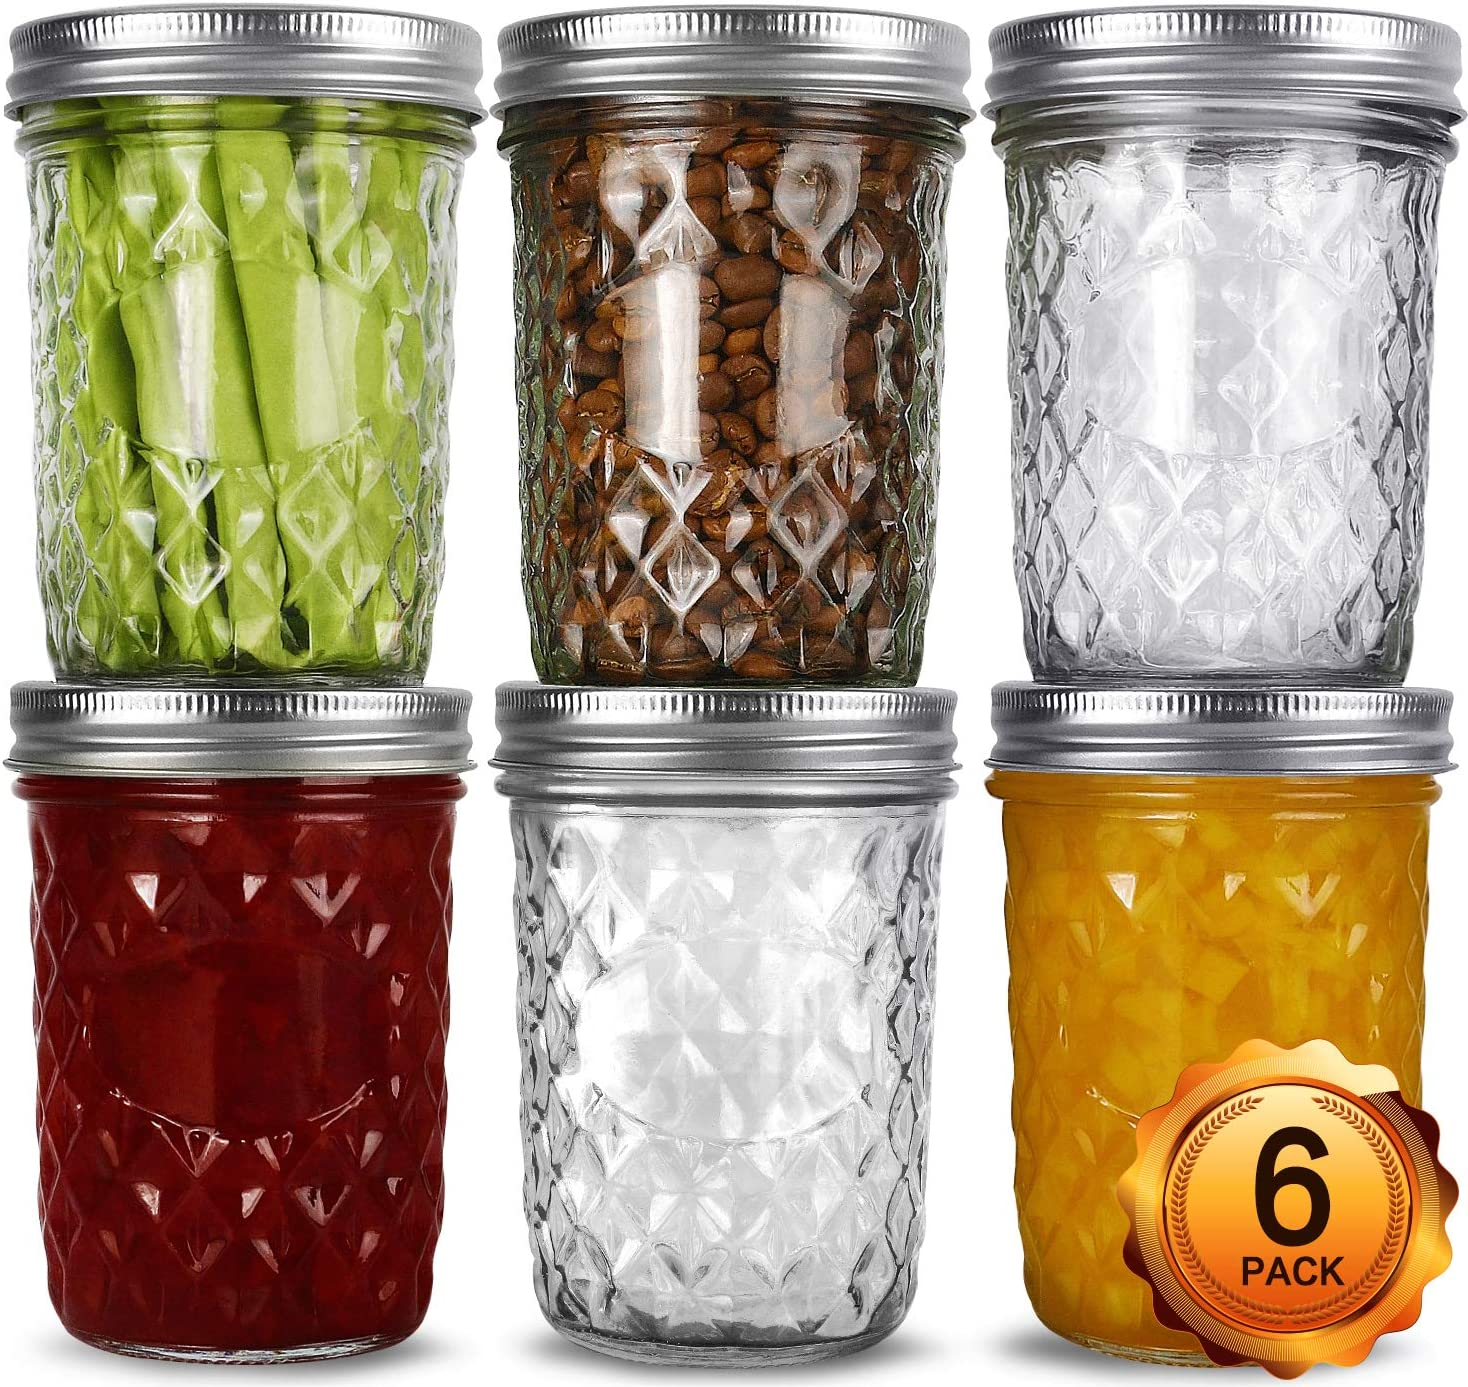 Wide Mouth Mason Jars 16oz, VERONES 6 Pack 16 oz Wide Mouth Mason Jars with Lids and Bands, Ideal for Jam, Honey, Wedding Favors, Shower Favors, Baby Foods